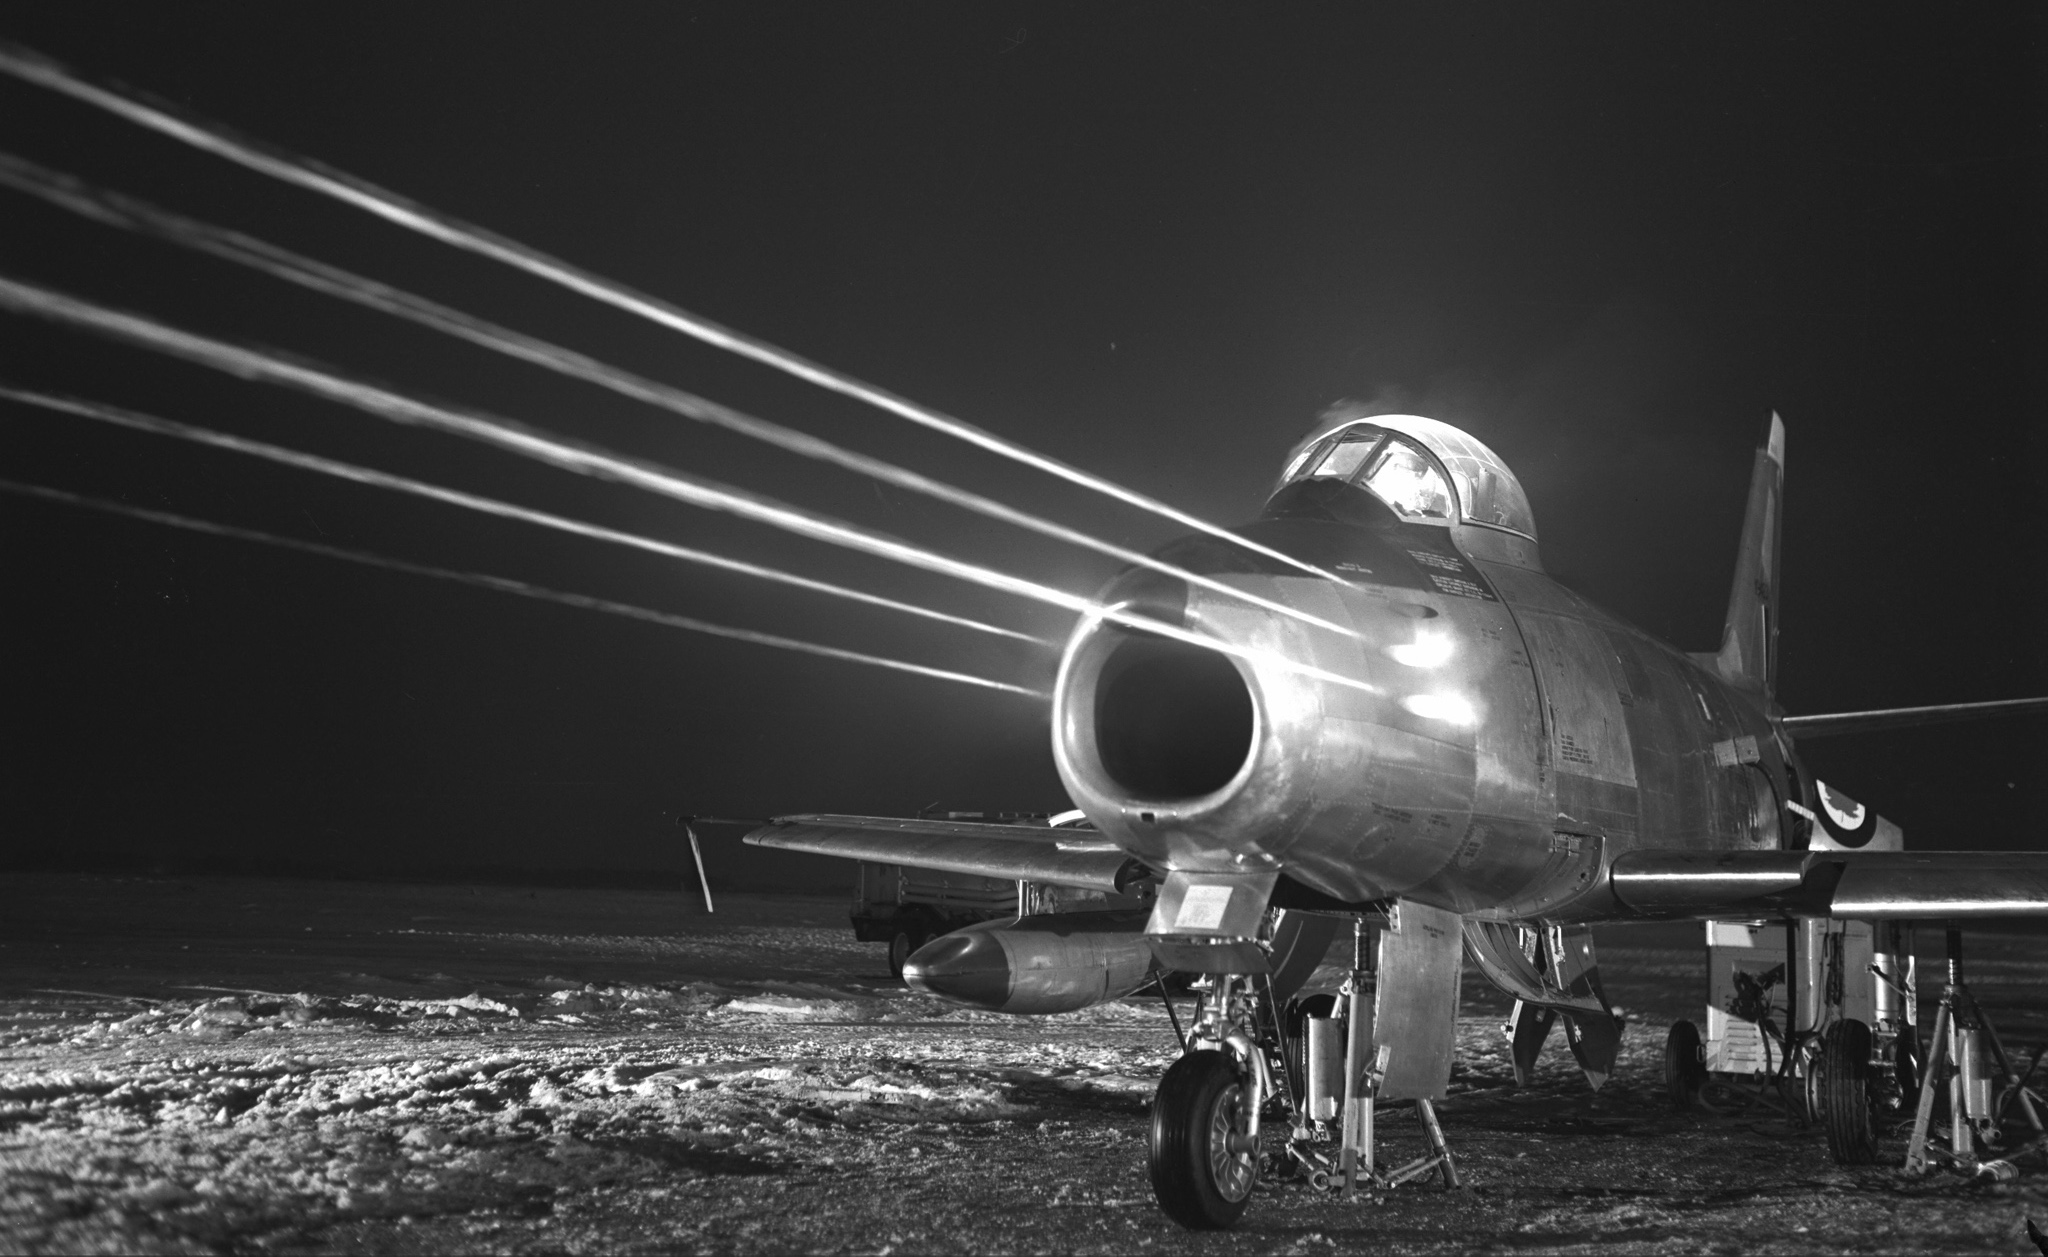 An F-86 Sabre tests its guns. PHOTO: DND Archives, PL-55764